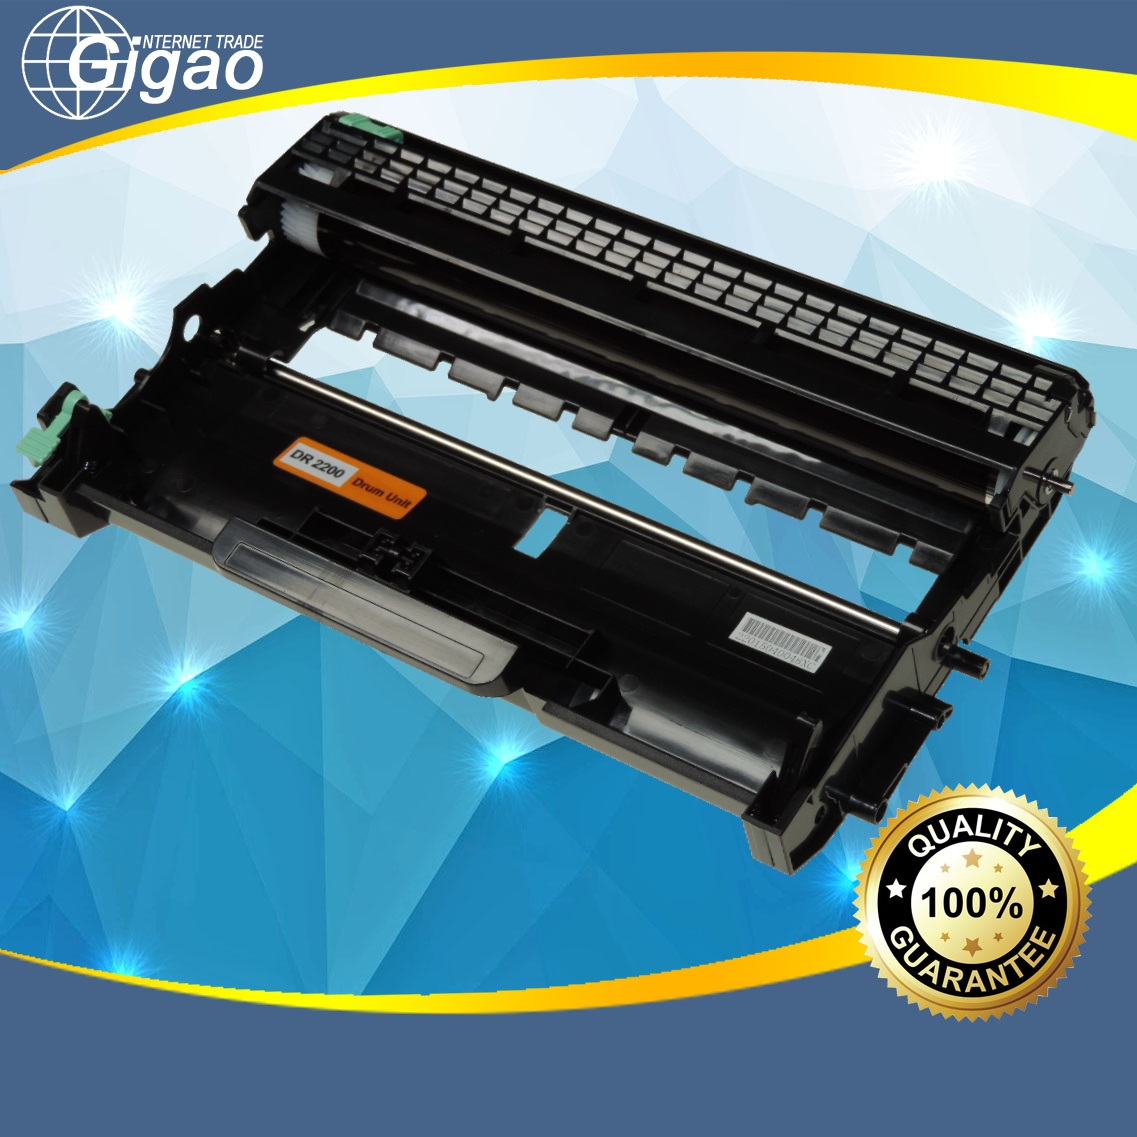 Gigao Laserdrum kompatibel Brother DR-2200 für HL-2230